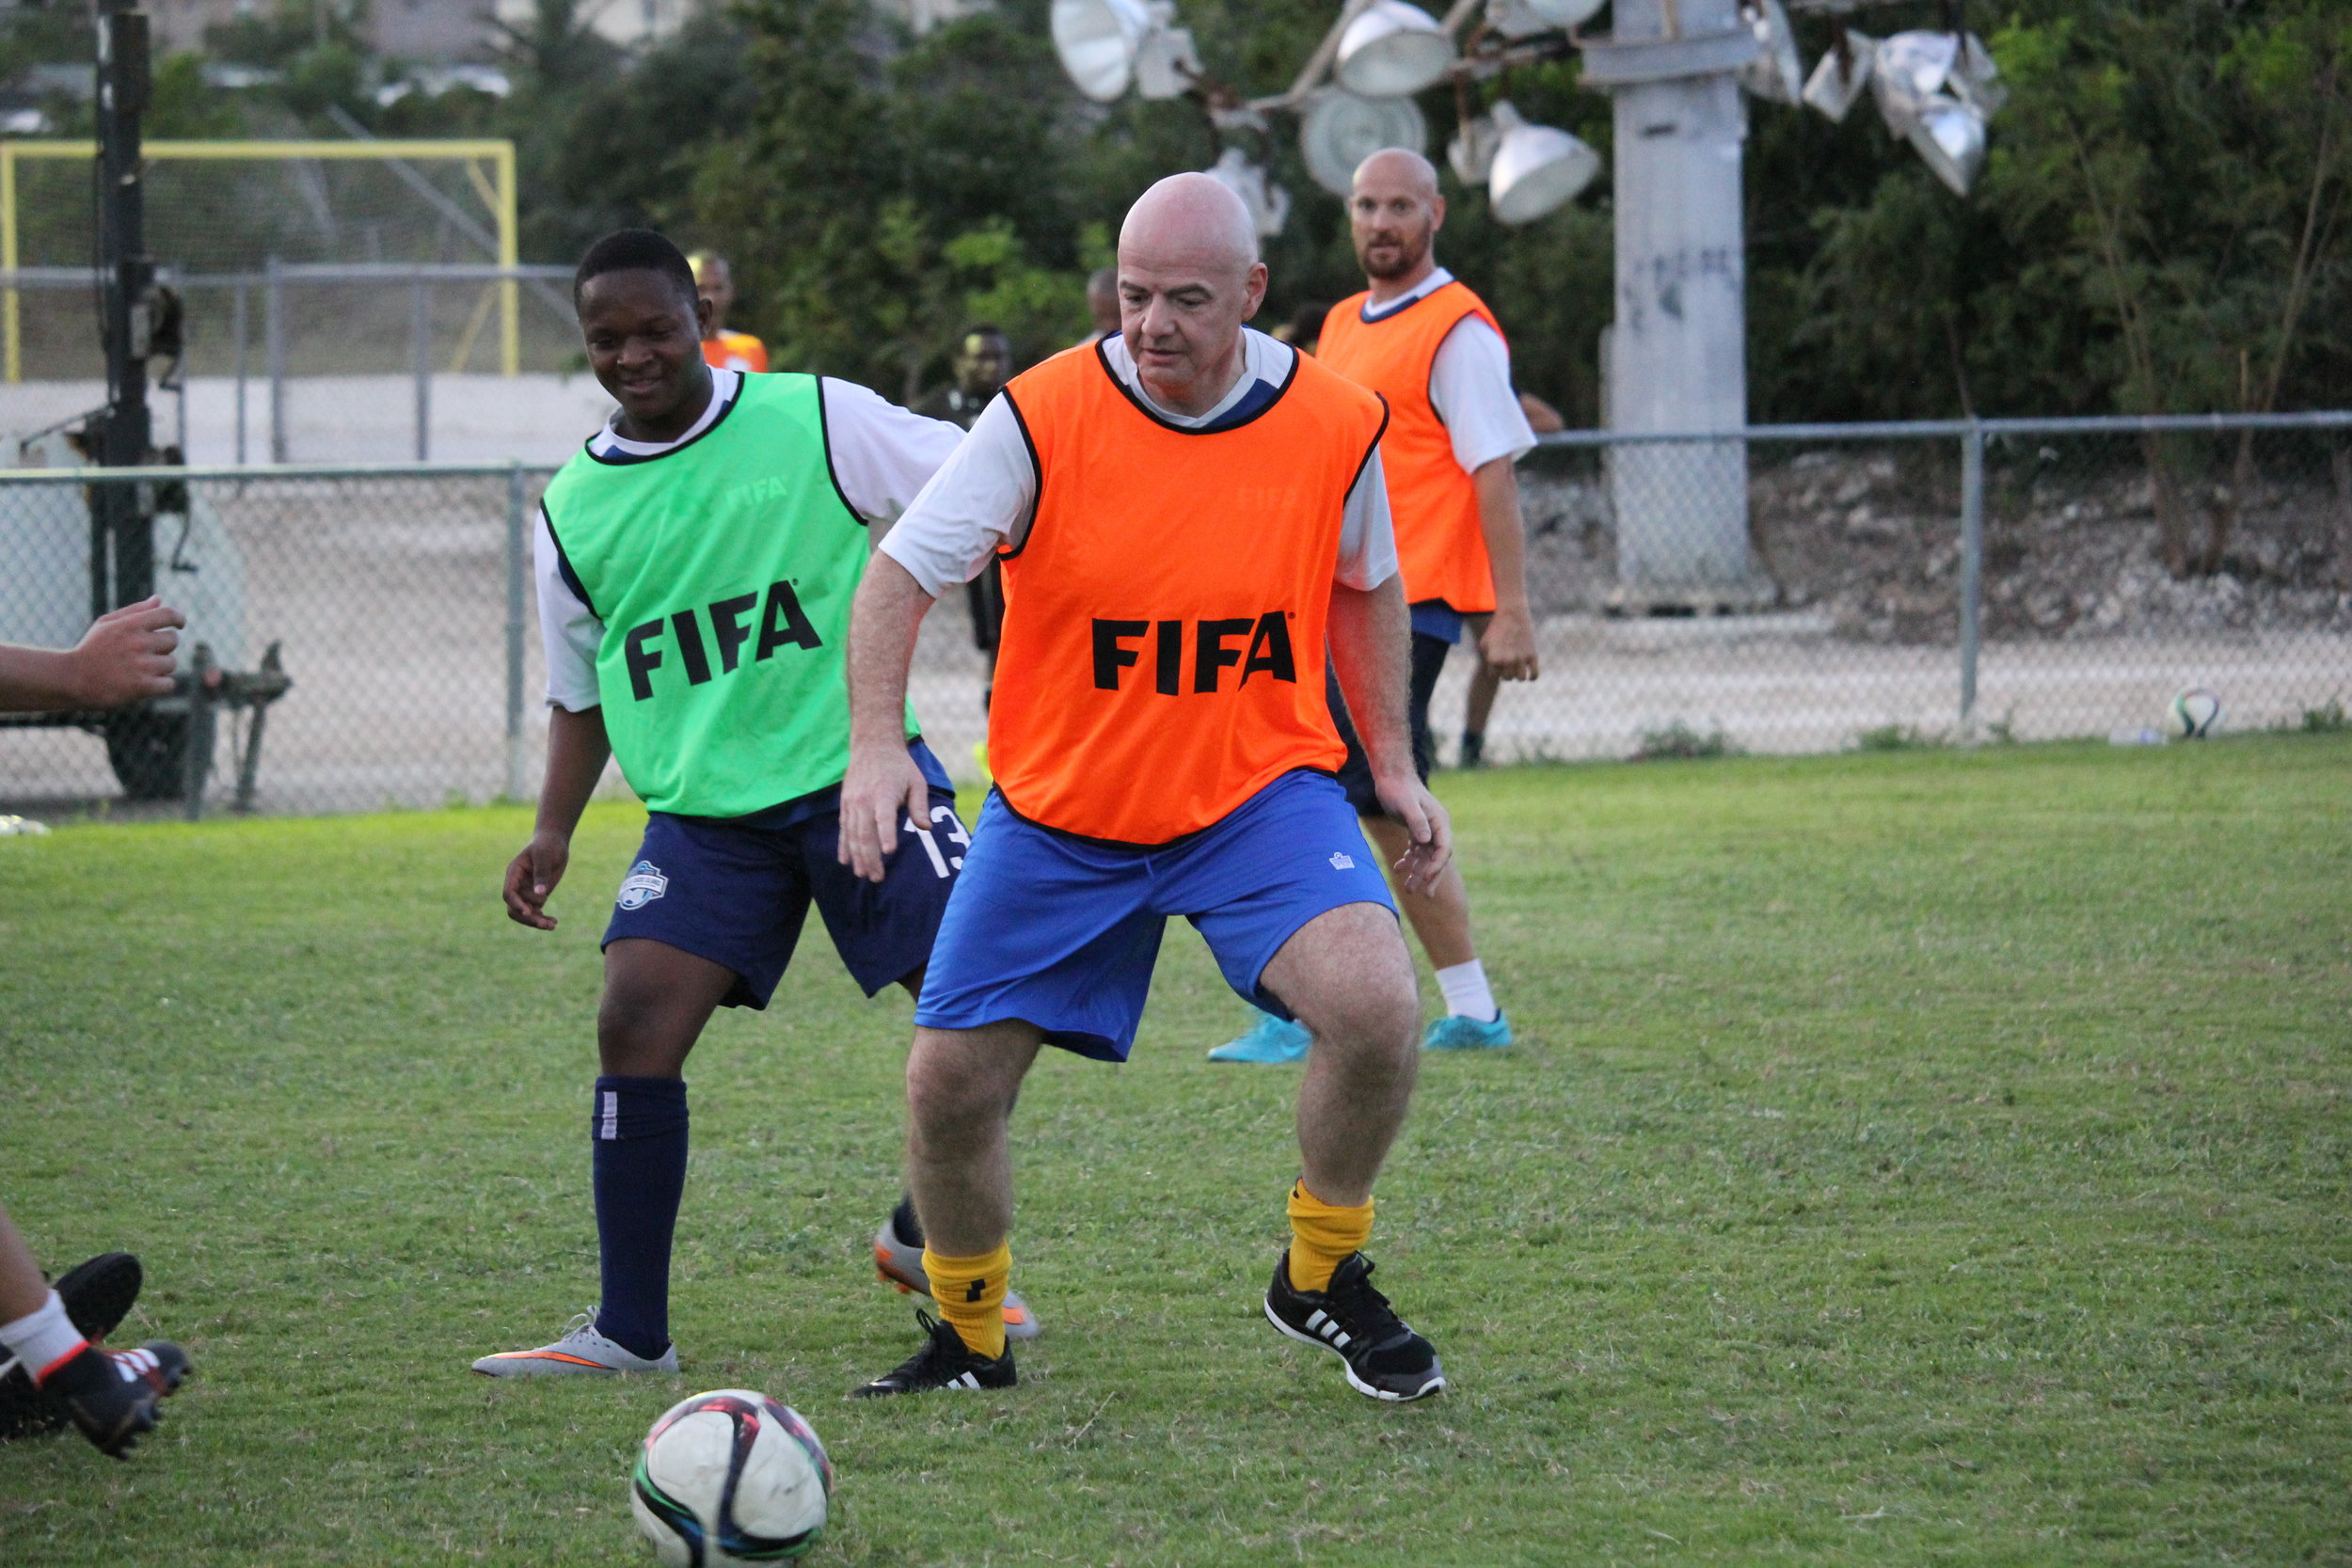 FIFA President Gianni Ascani playing in short scrimmage